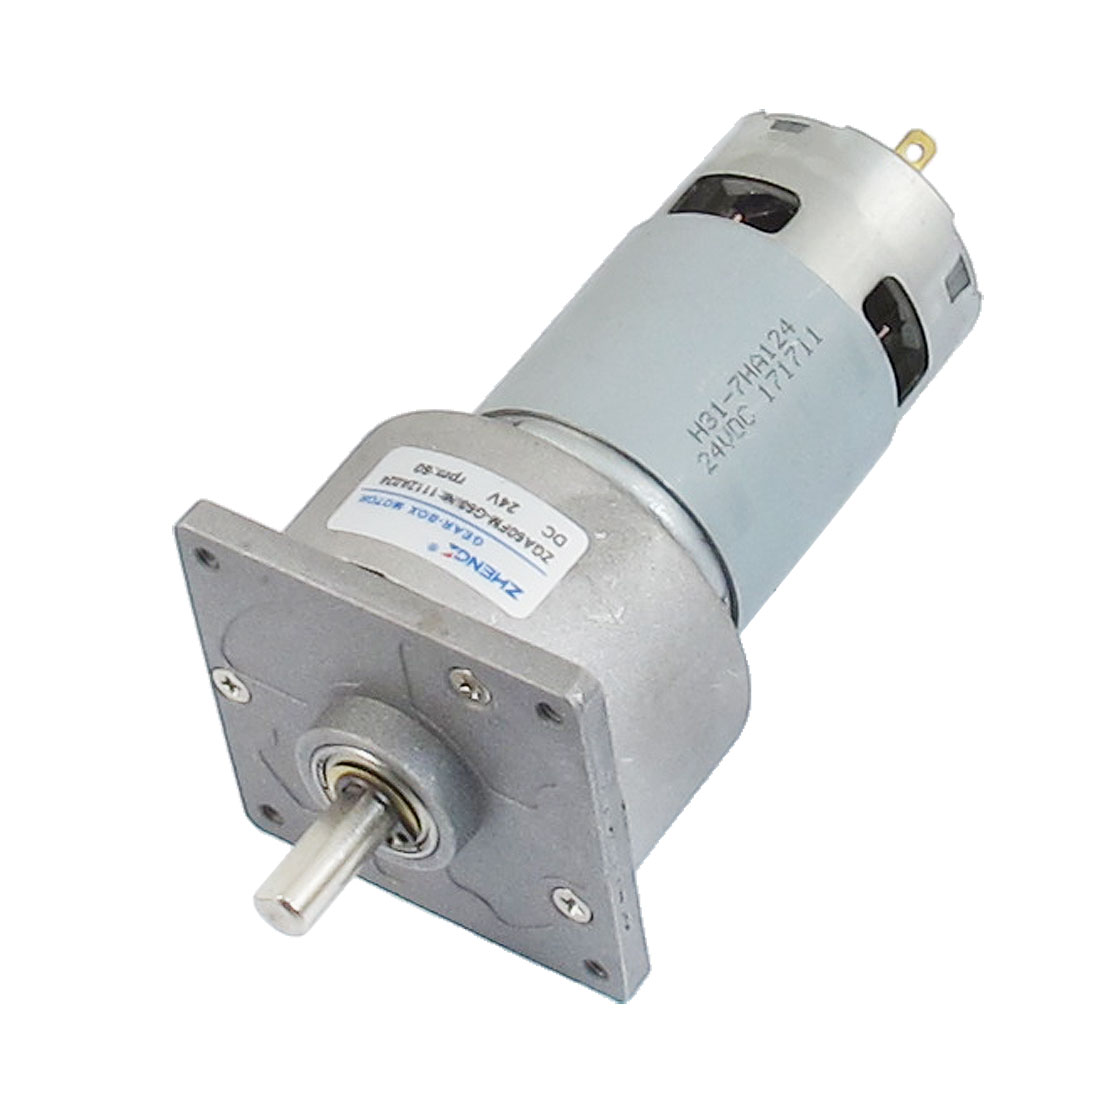 24VDC 60RPM Output Speed Two Pins Magnetic Geared Motor